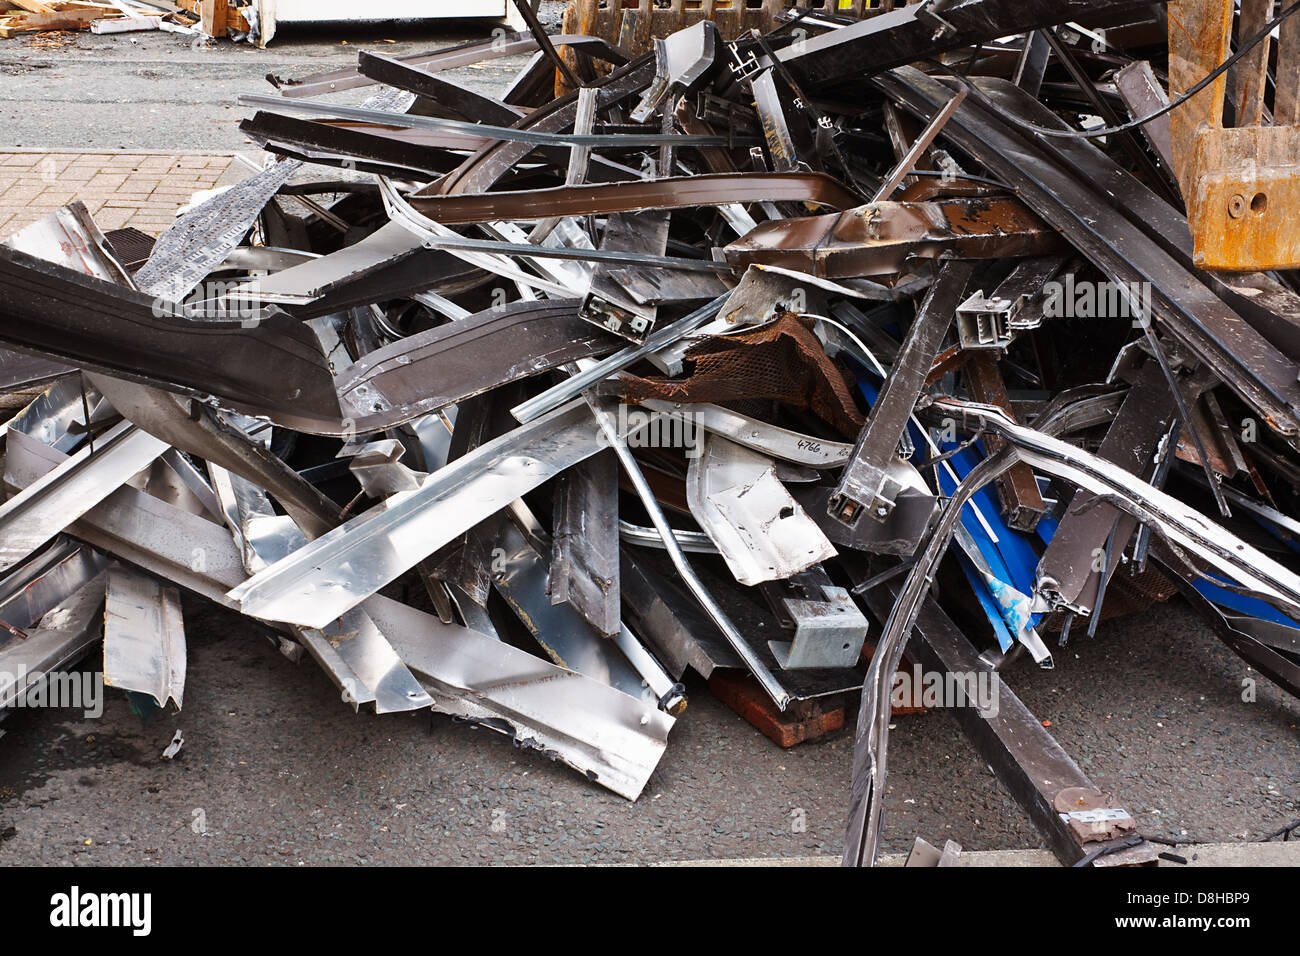 Scrap metal waste of iron and aluminum for recycling at a